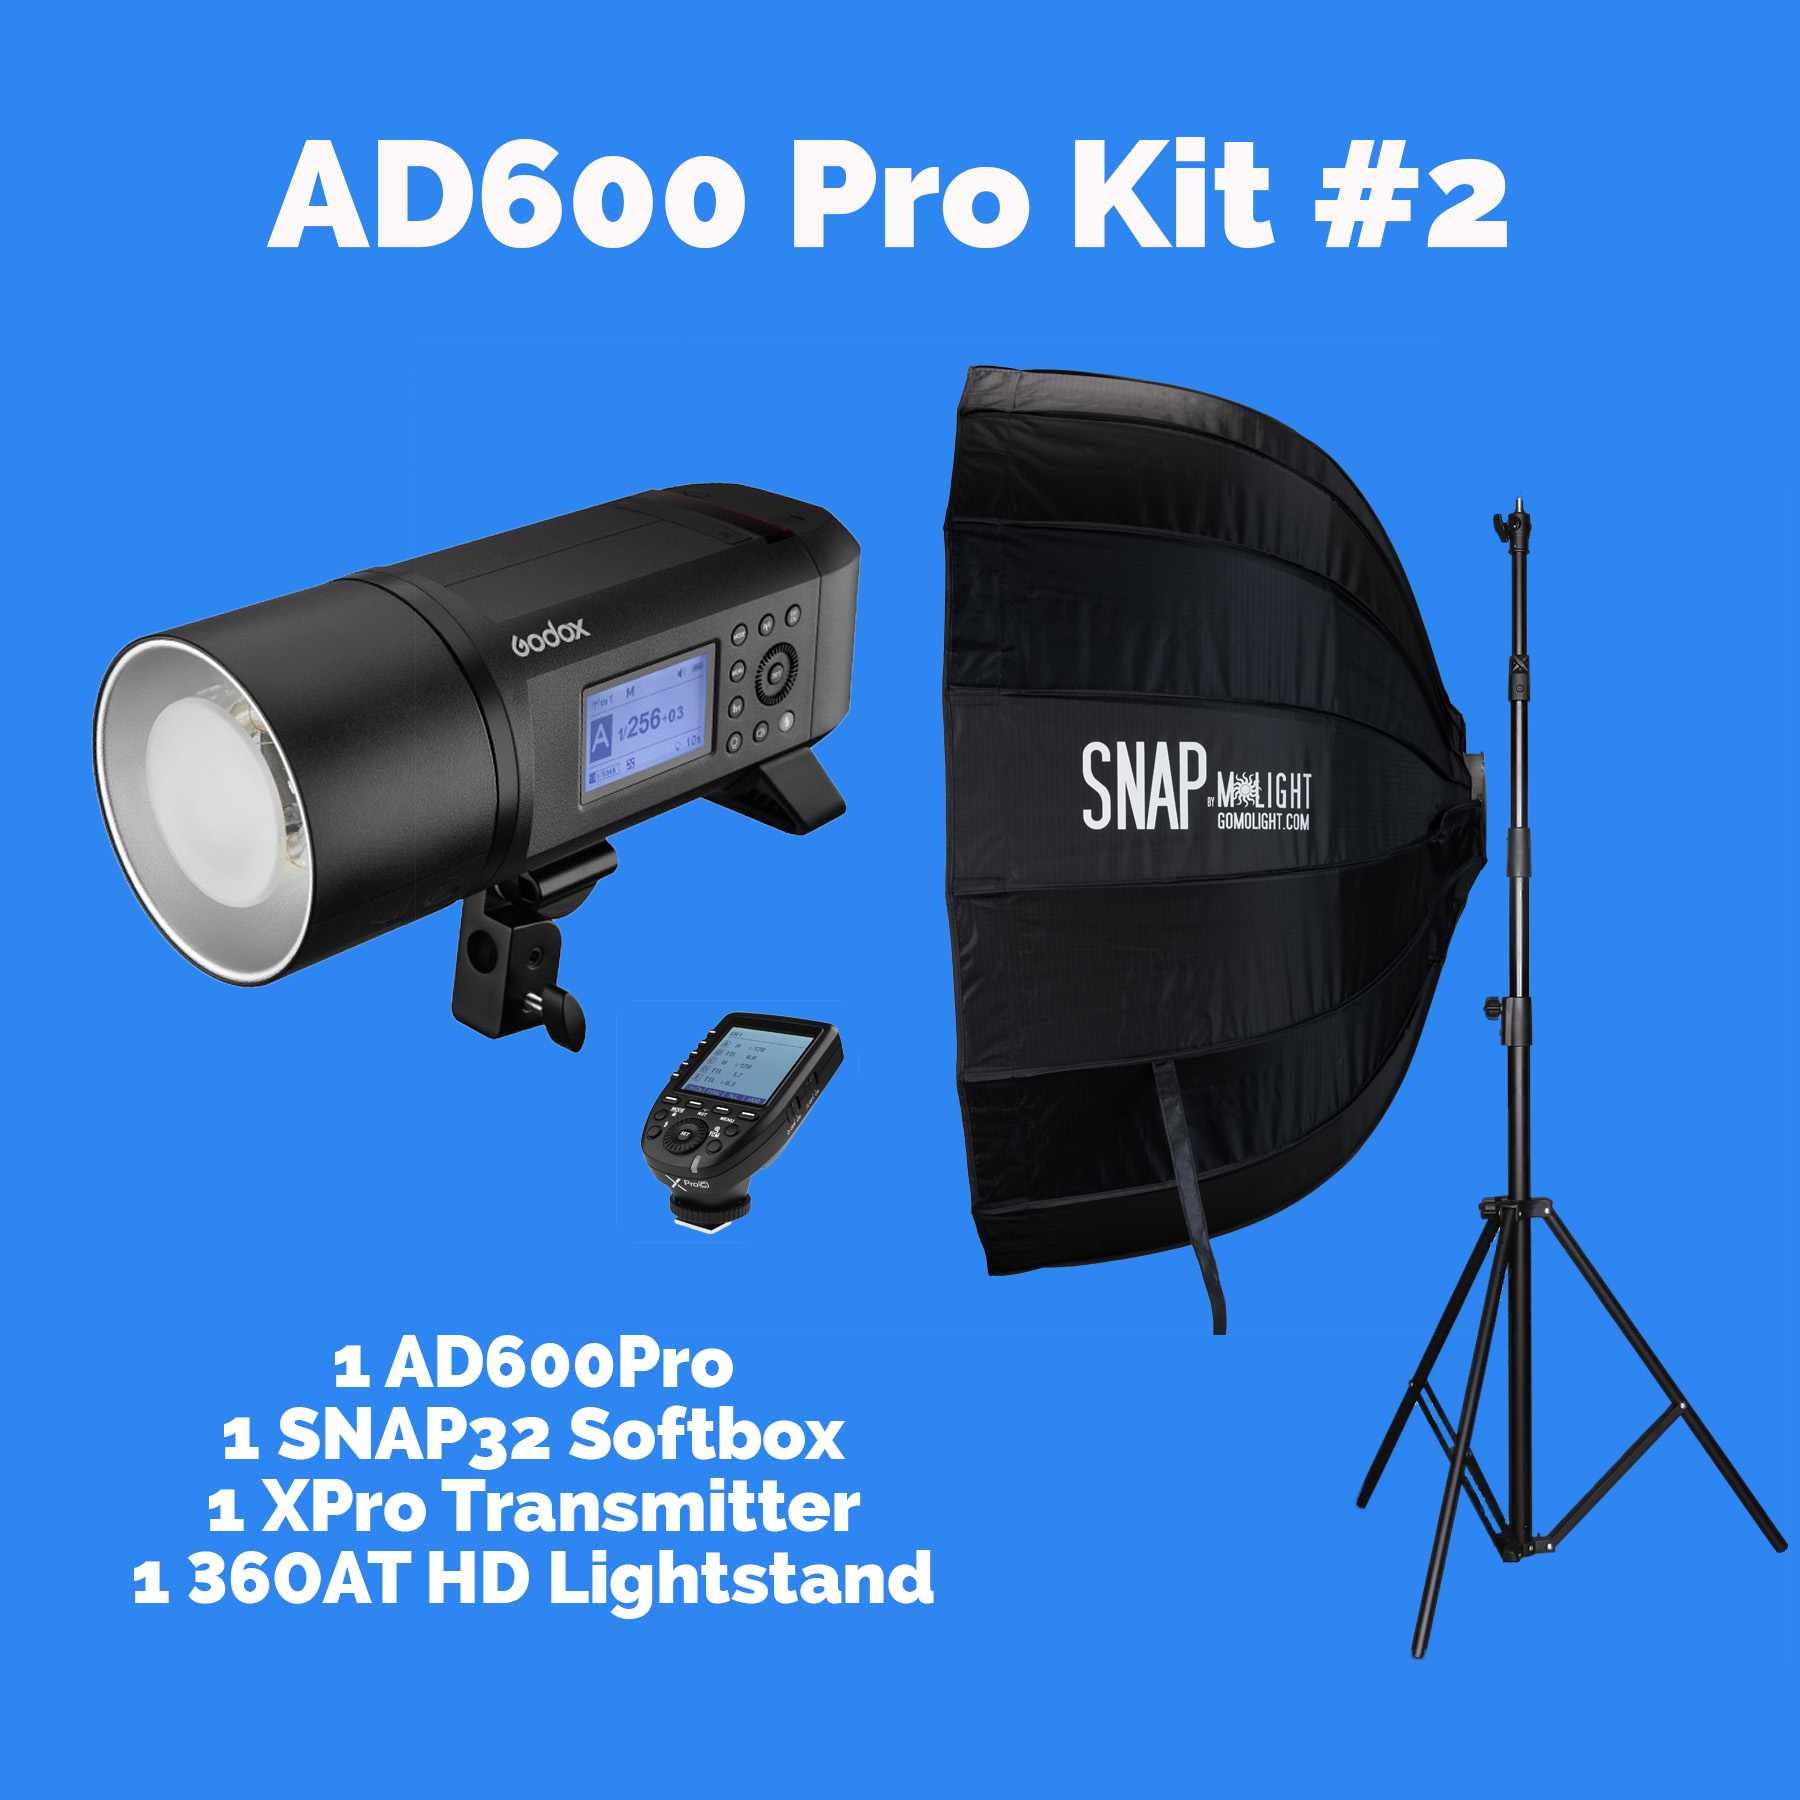 AD600Pro Kit #2 with SNAP32